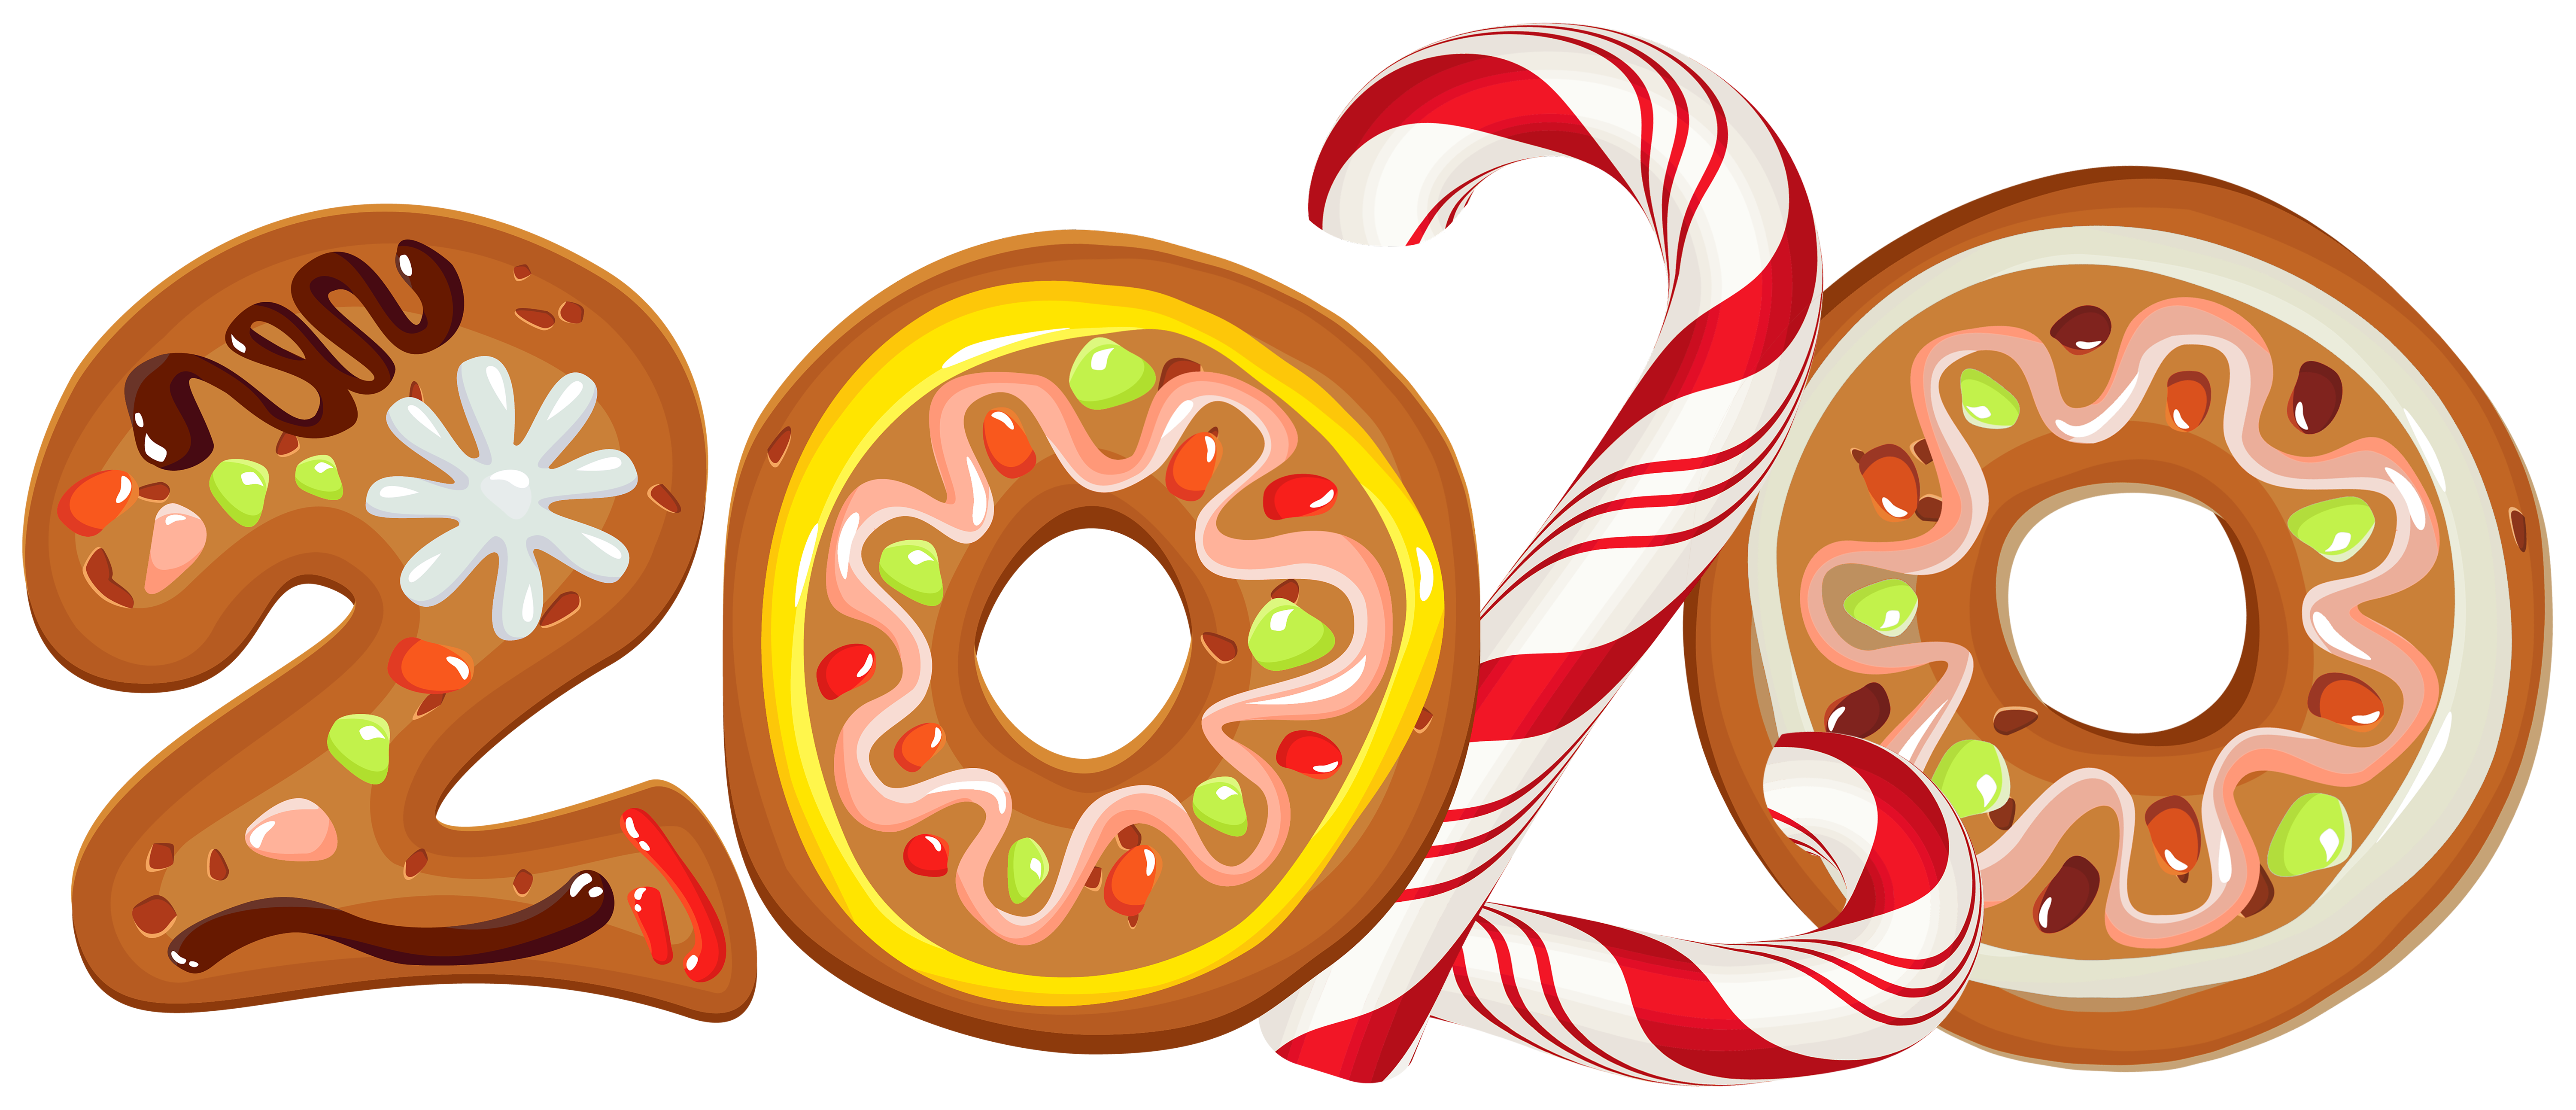 2020 Cookie Style PNG Clipart Image.